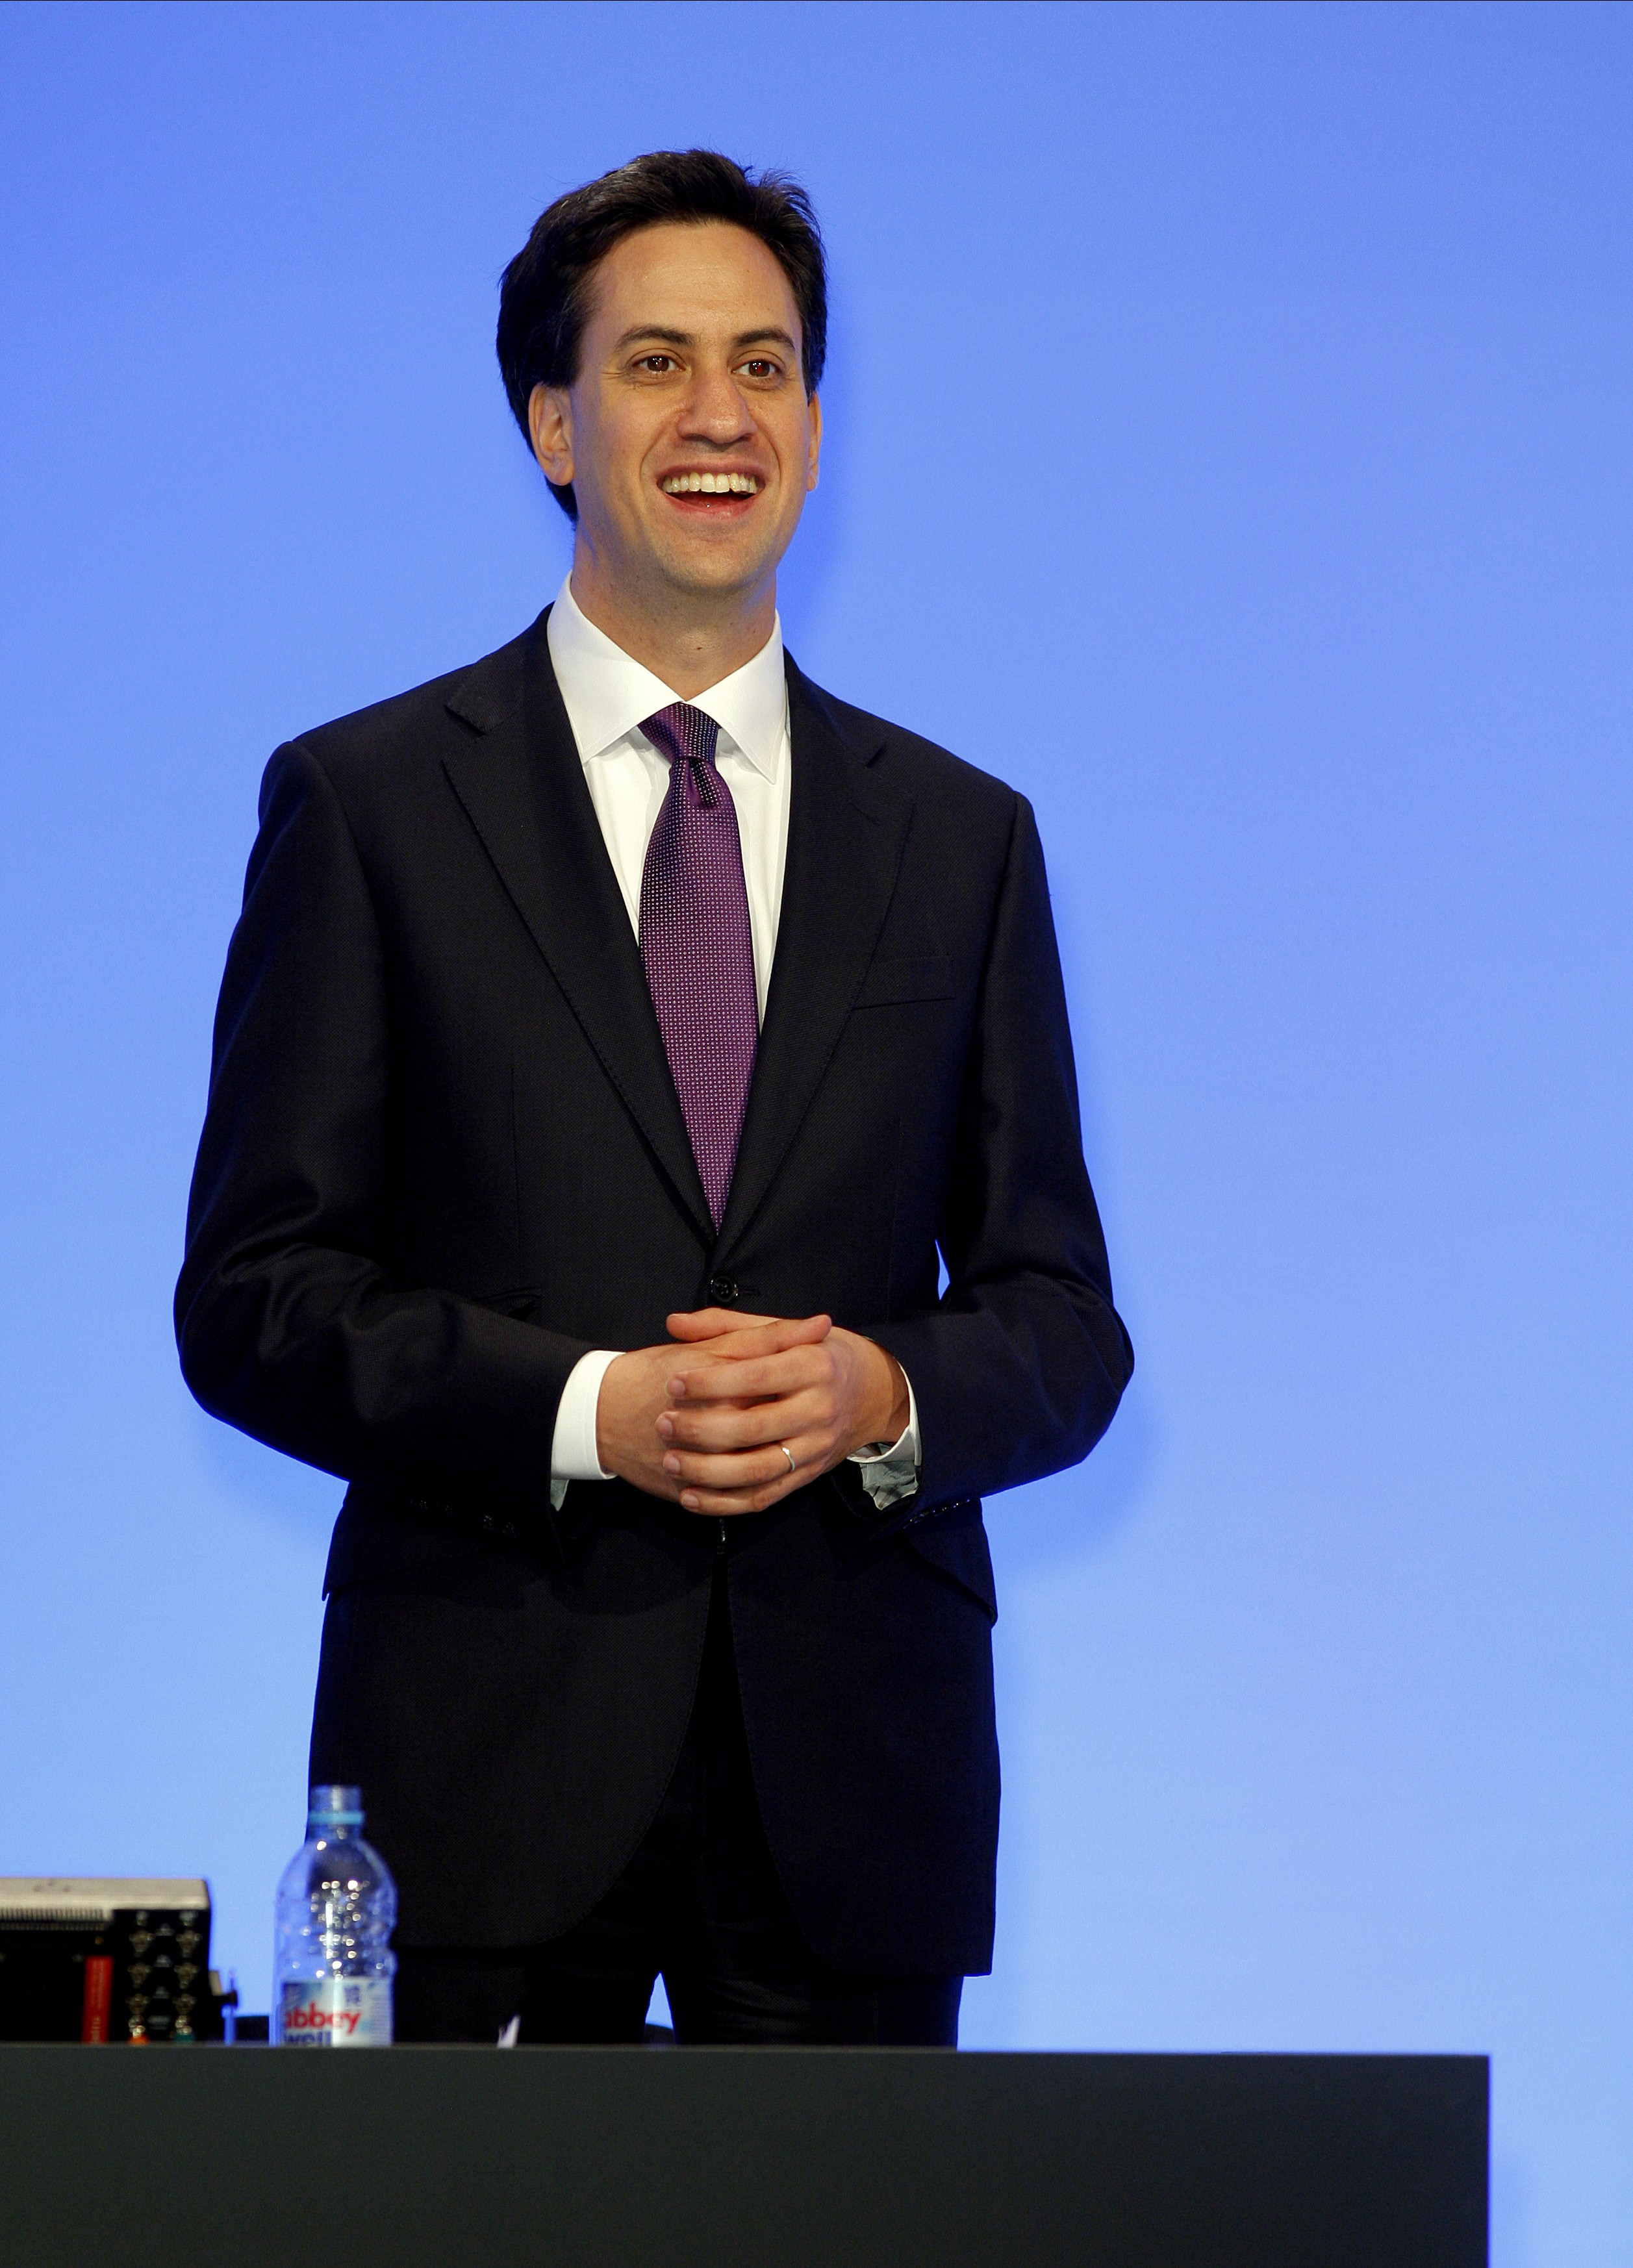 Ed Miliband at the Labour Party conference 2012